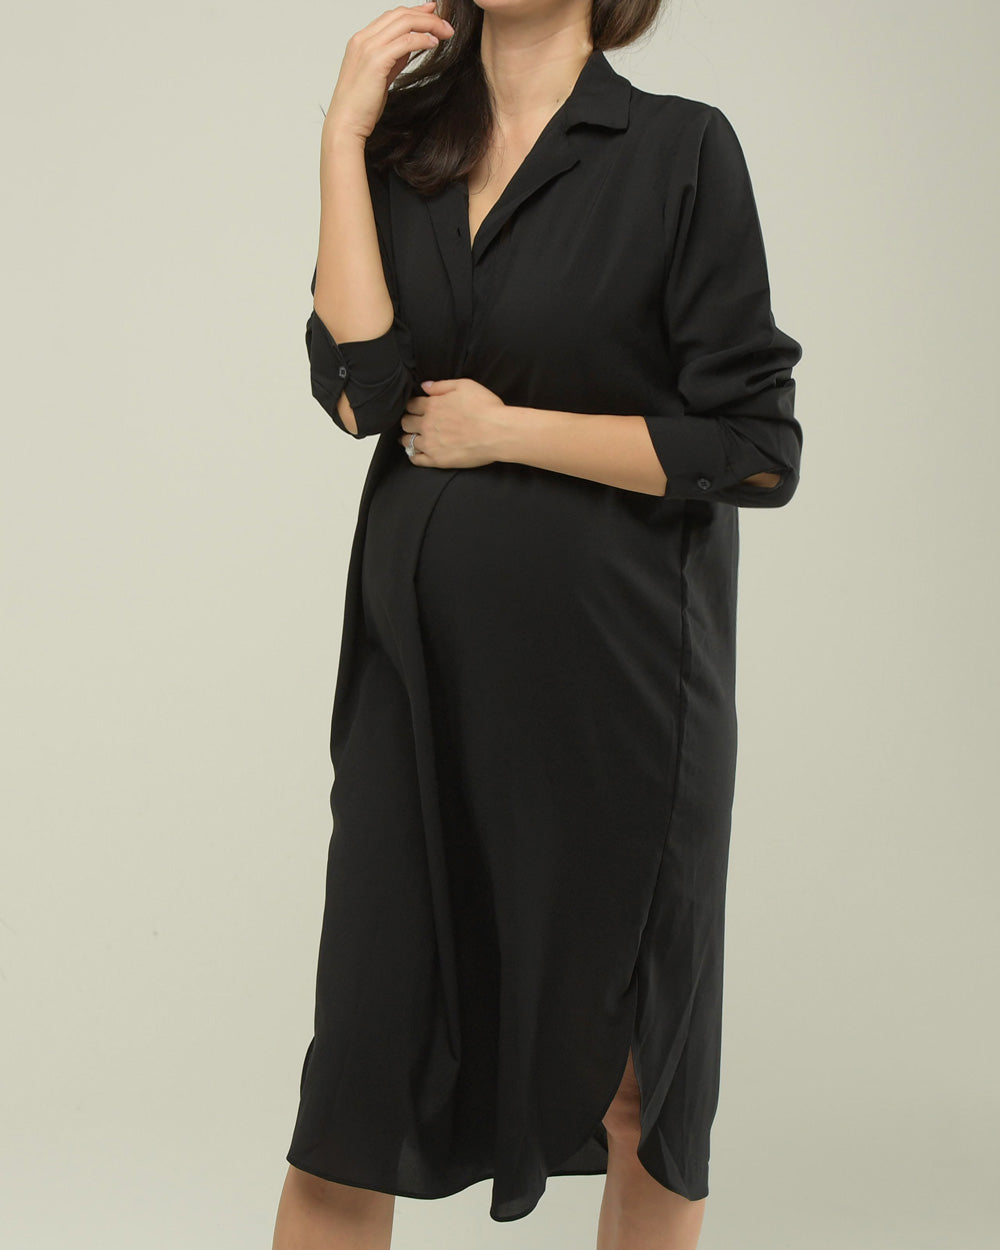 SILKY SMOOTH SATIN SHIRT DRESS